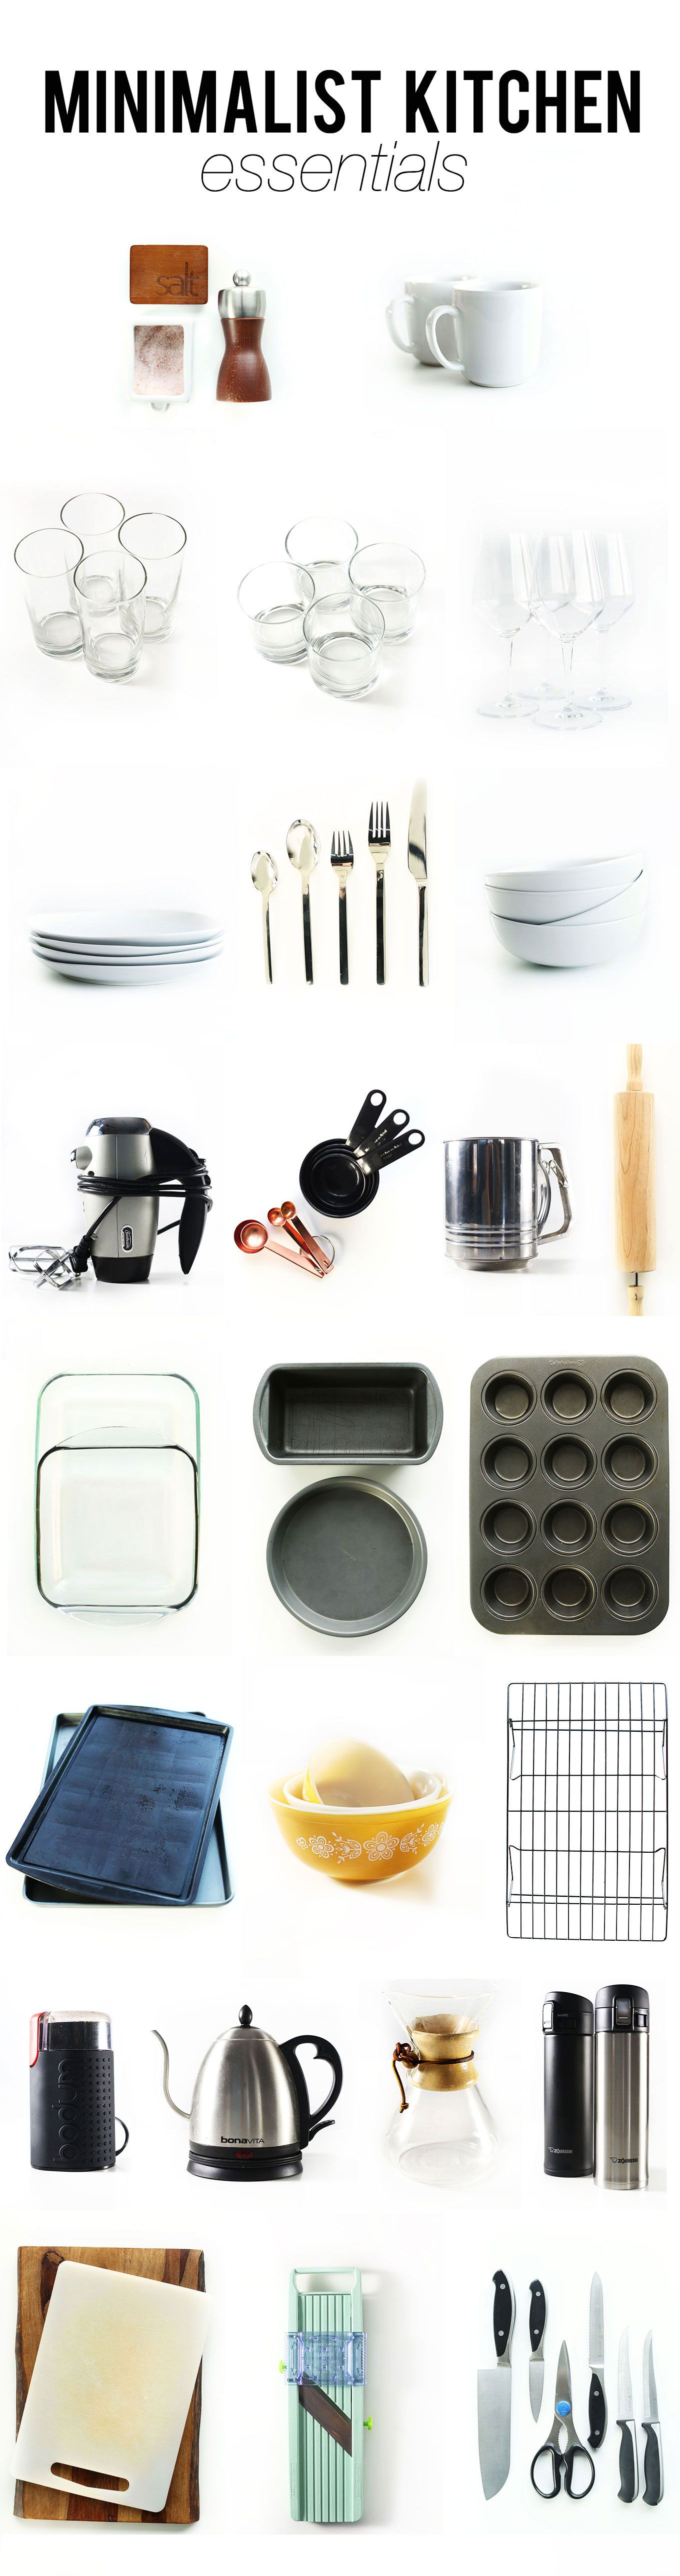 Minimalist Kitchen Essentials | MinimalistBaker.com | lovely things ...